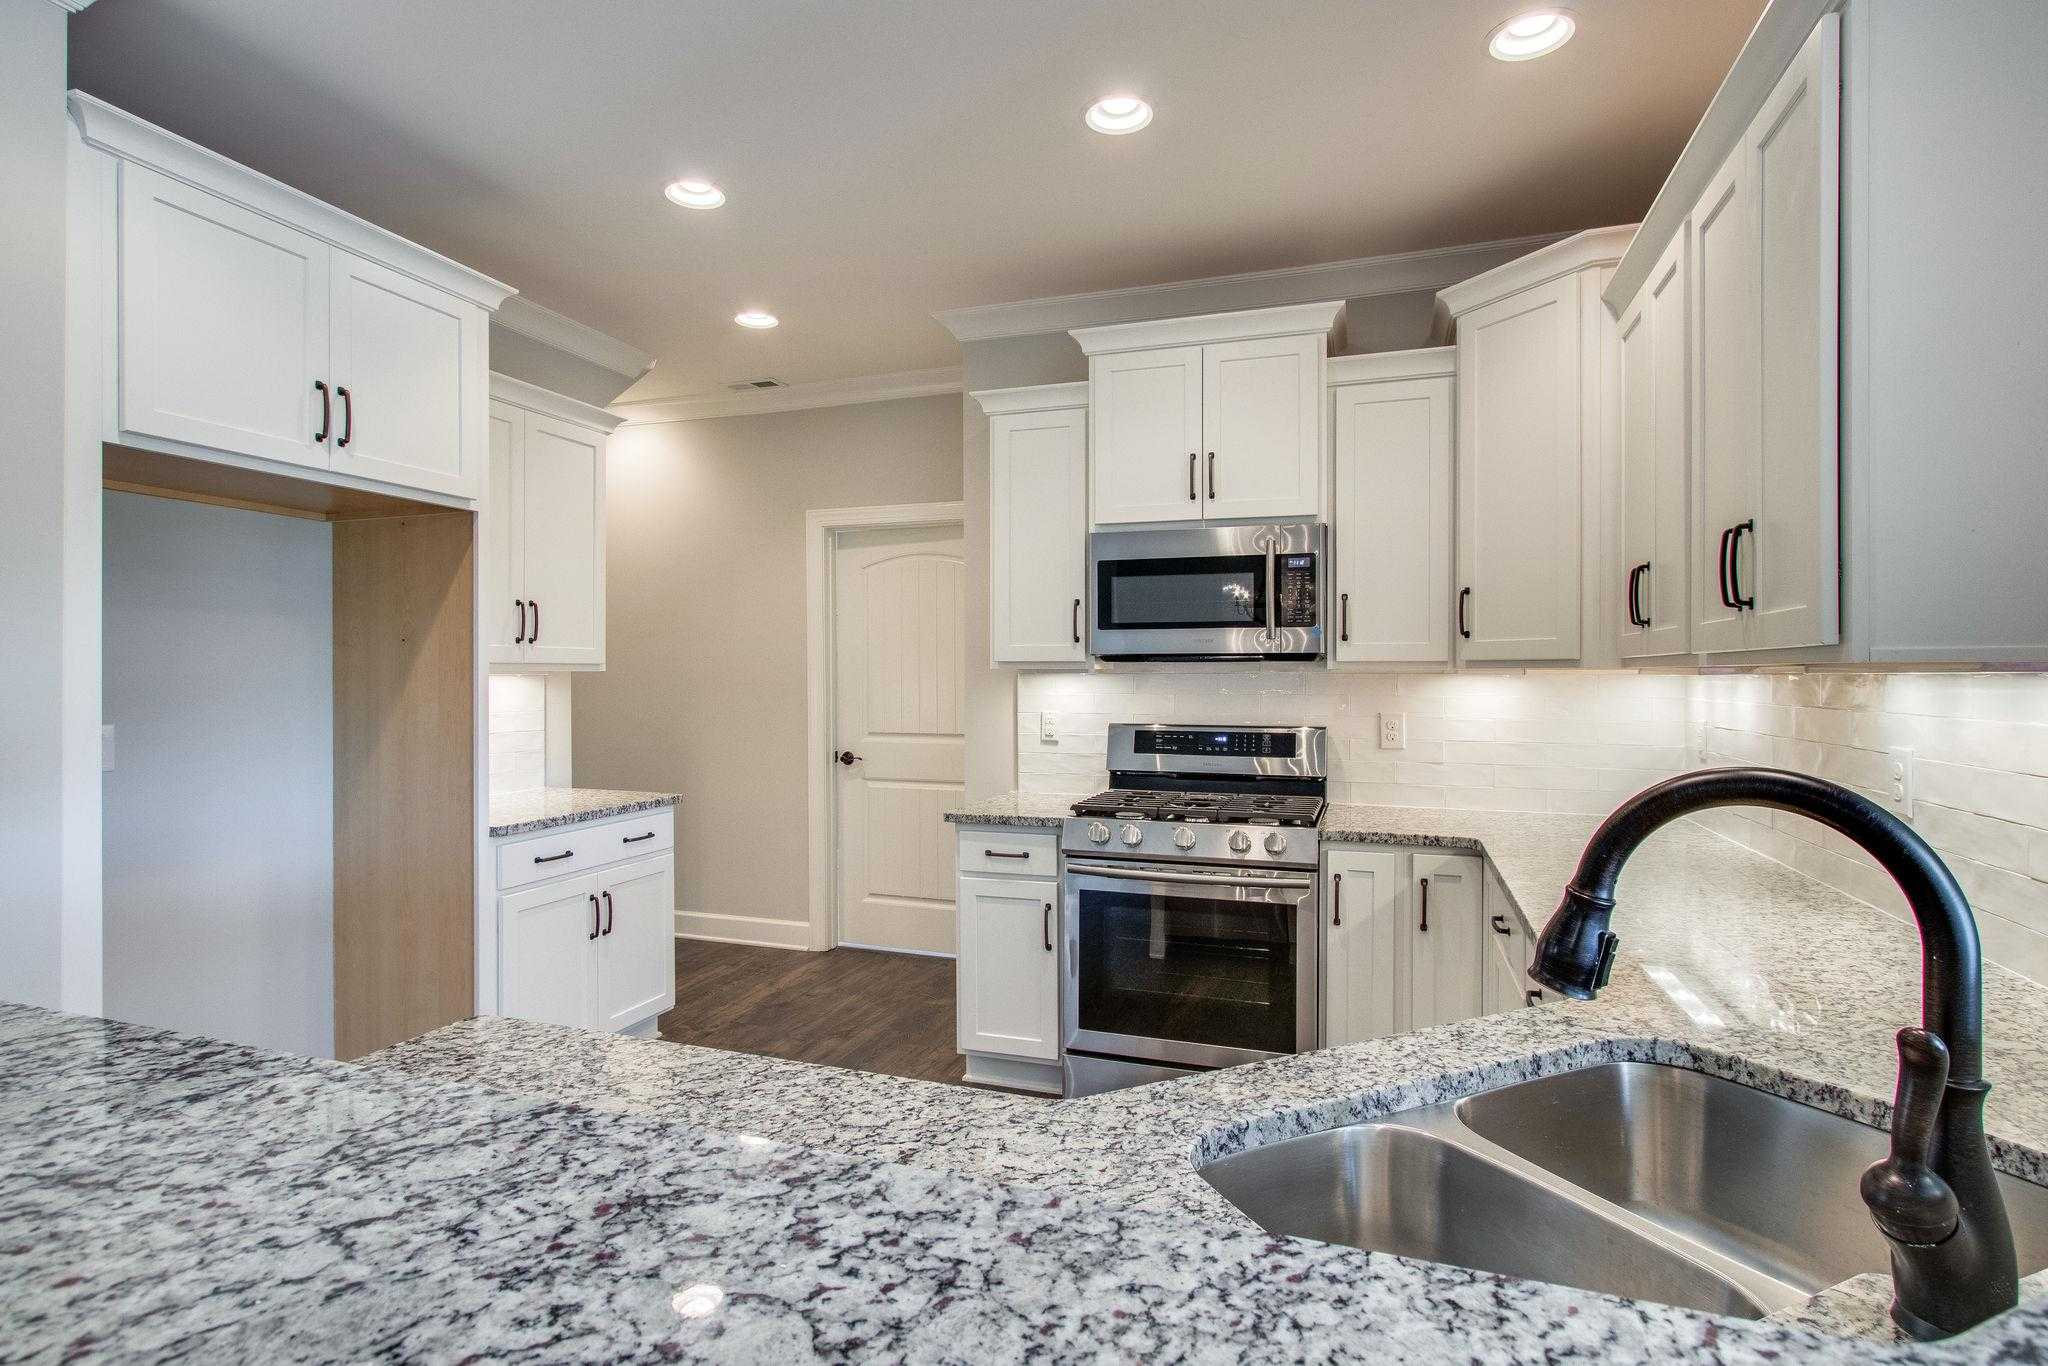 $367,900 - 3Br/3Ba -  for Sale in Five Oaks- The Villages, Lebanon